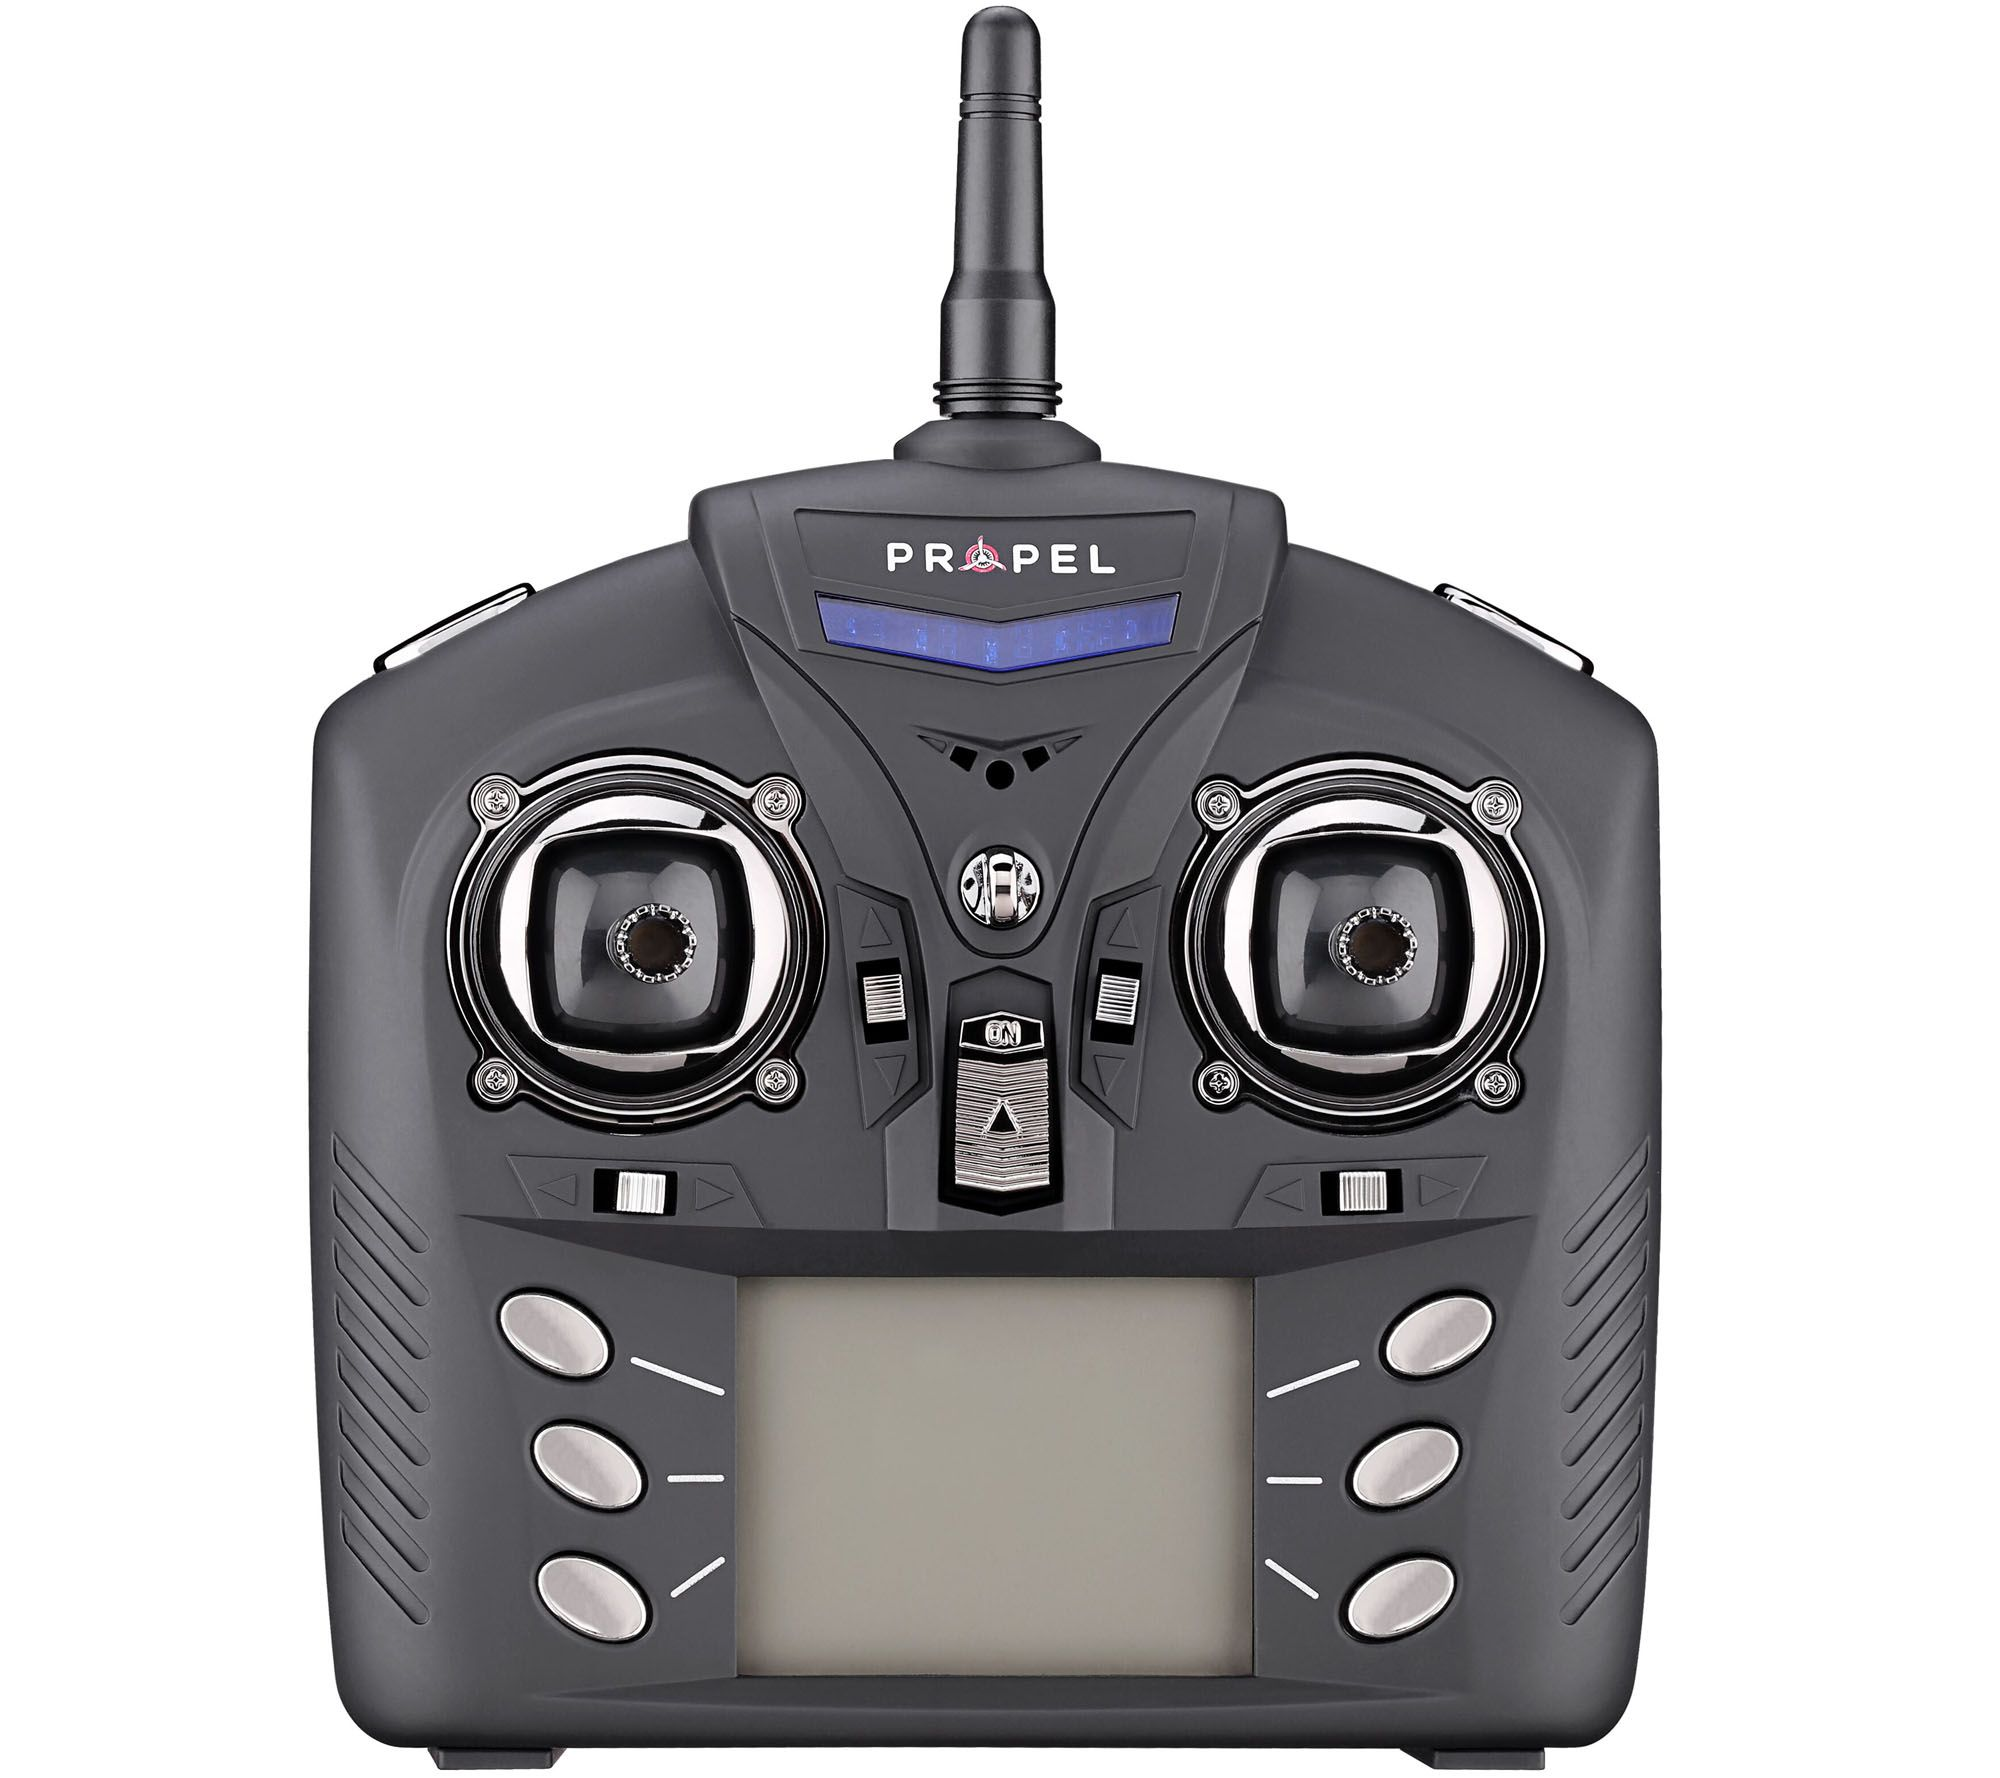 Propel Hd Drone Cloud Rider Extra Battery Extra Blades 8gb Sd